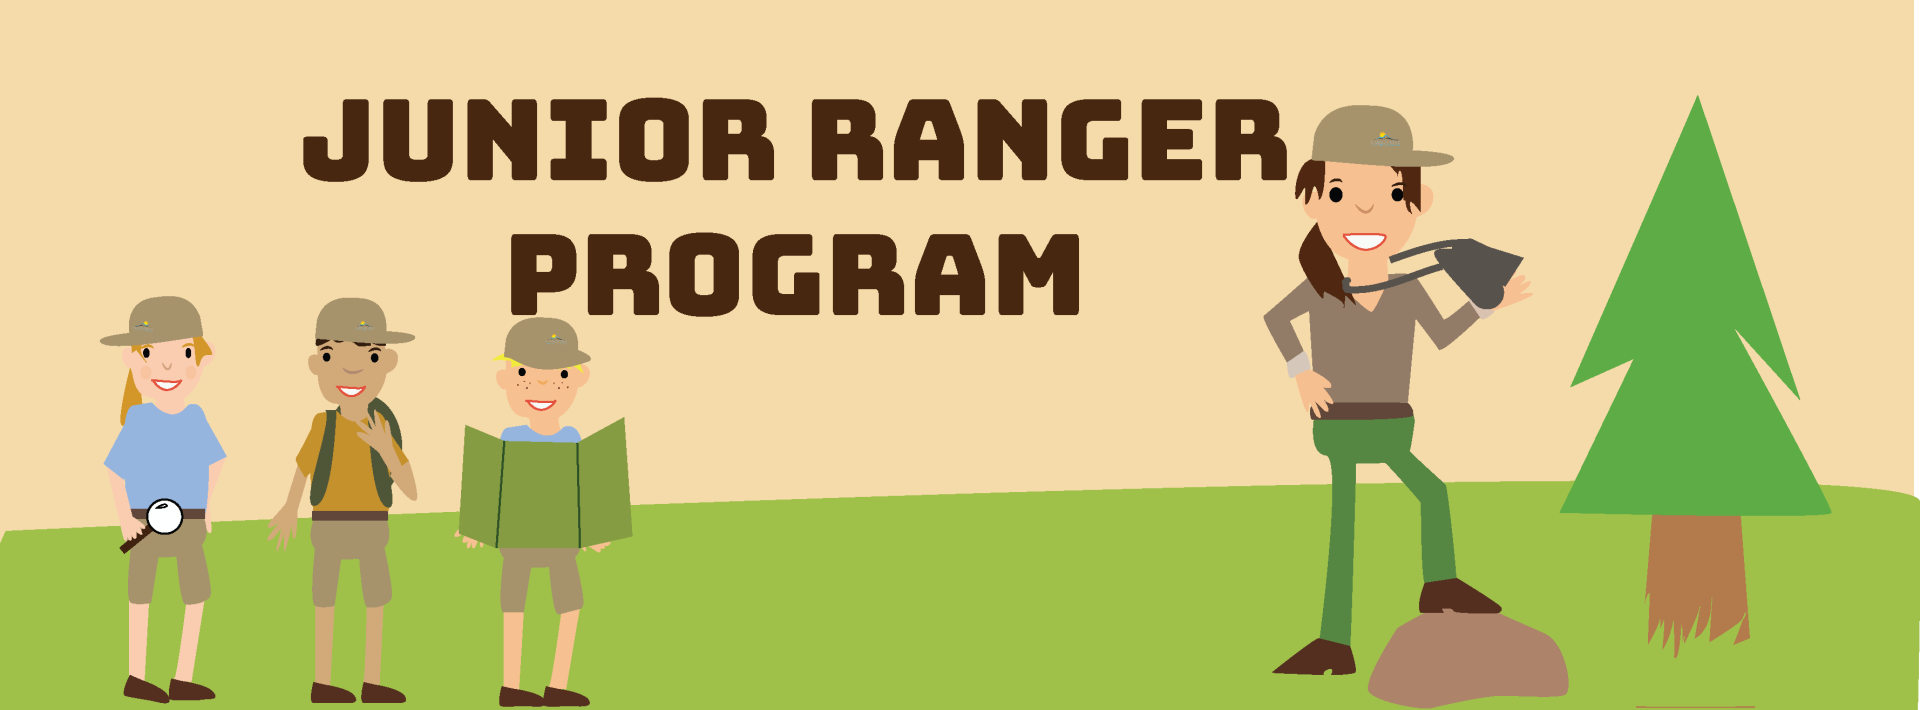 juniorranger